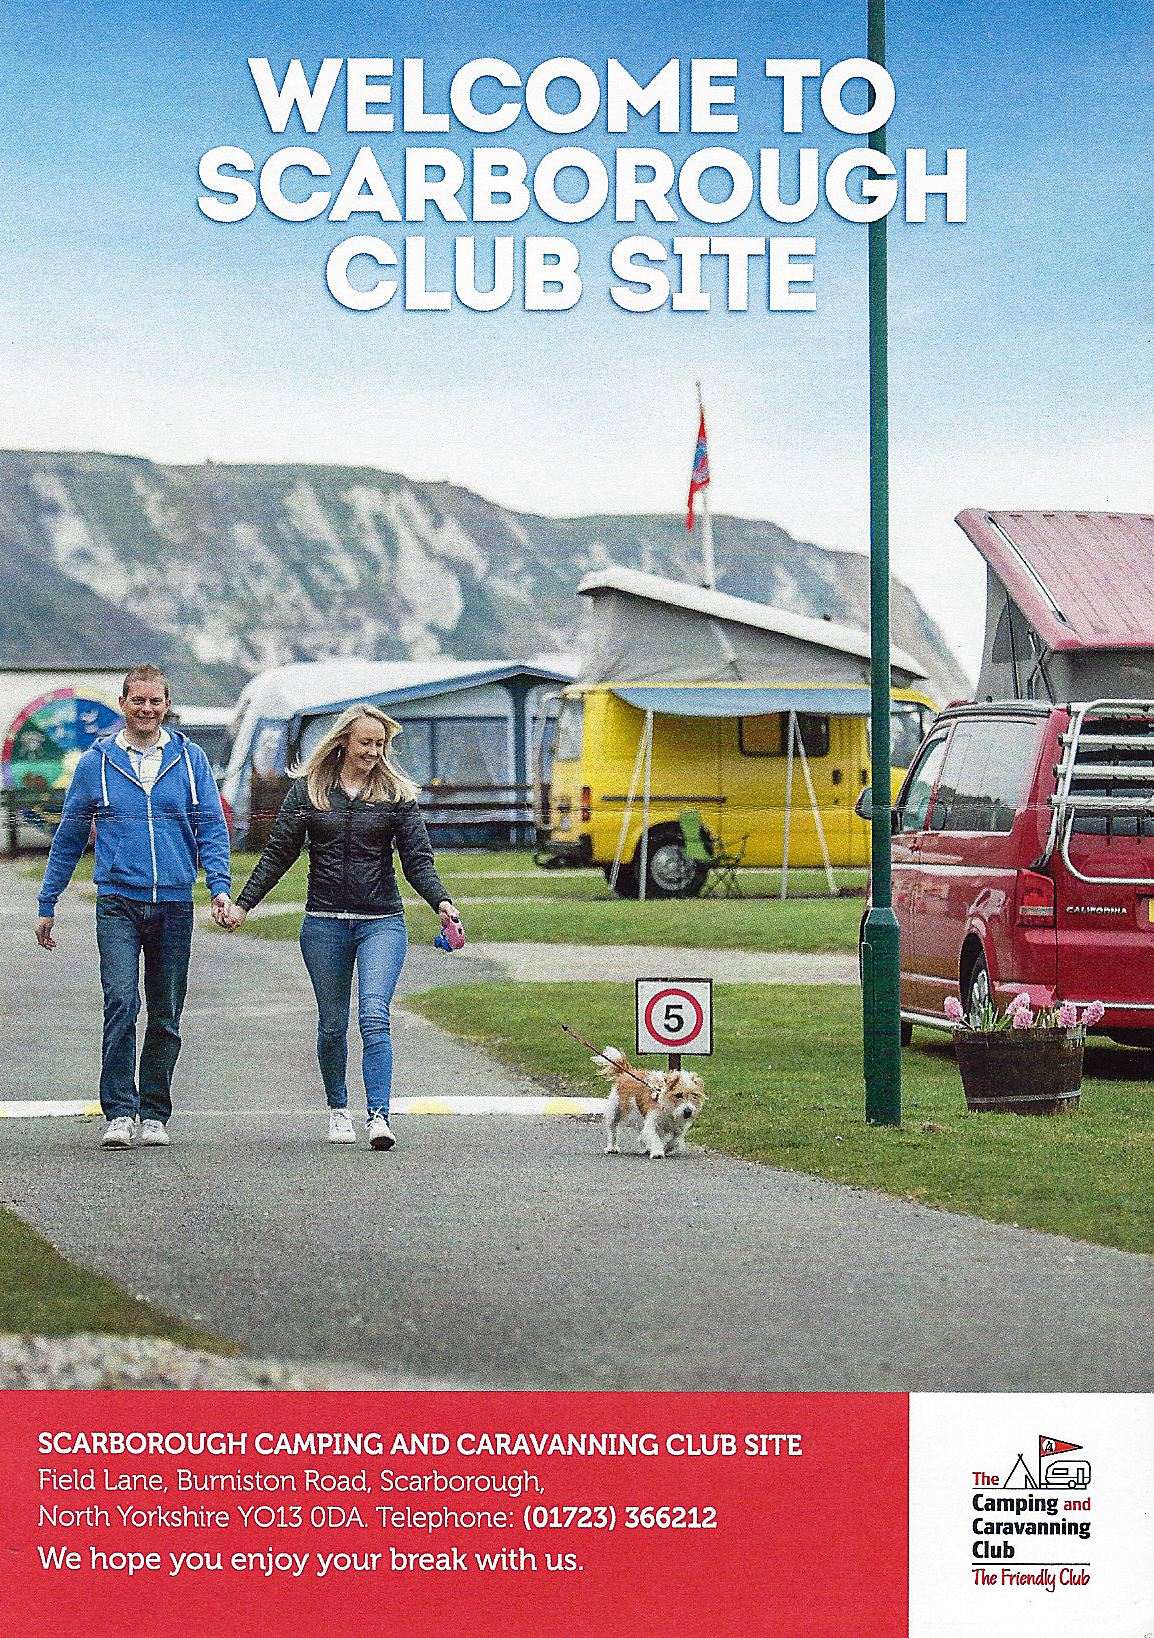 Arrivals leaflet, Scarborough Camping and Caravanning site, 2019